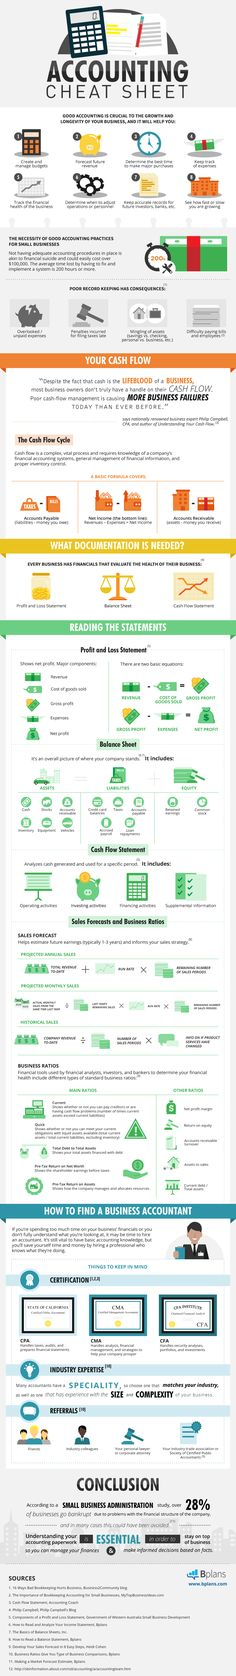 The Entrepreneur's Accounting Cheat Sheet (Infographic). Insightful ! A visual guide to accounting for entrepreneurs